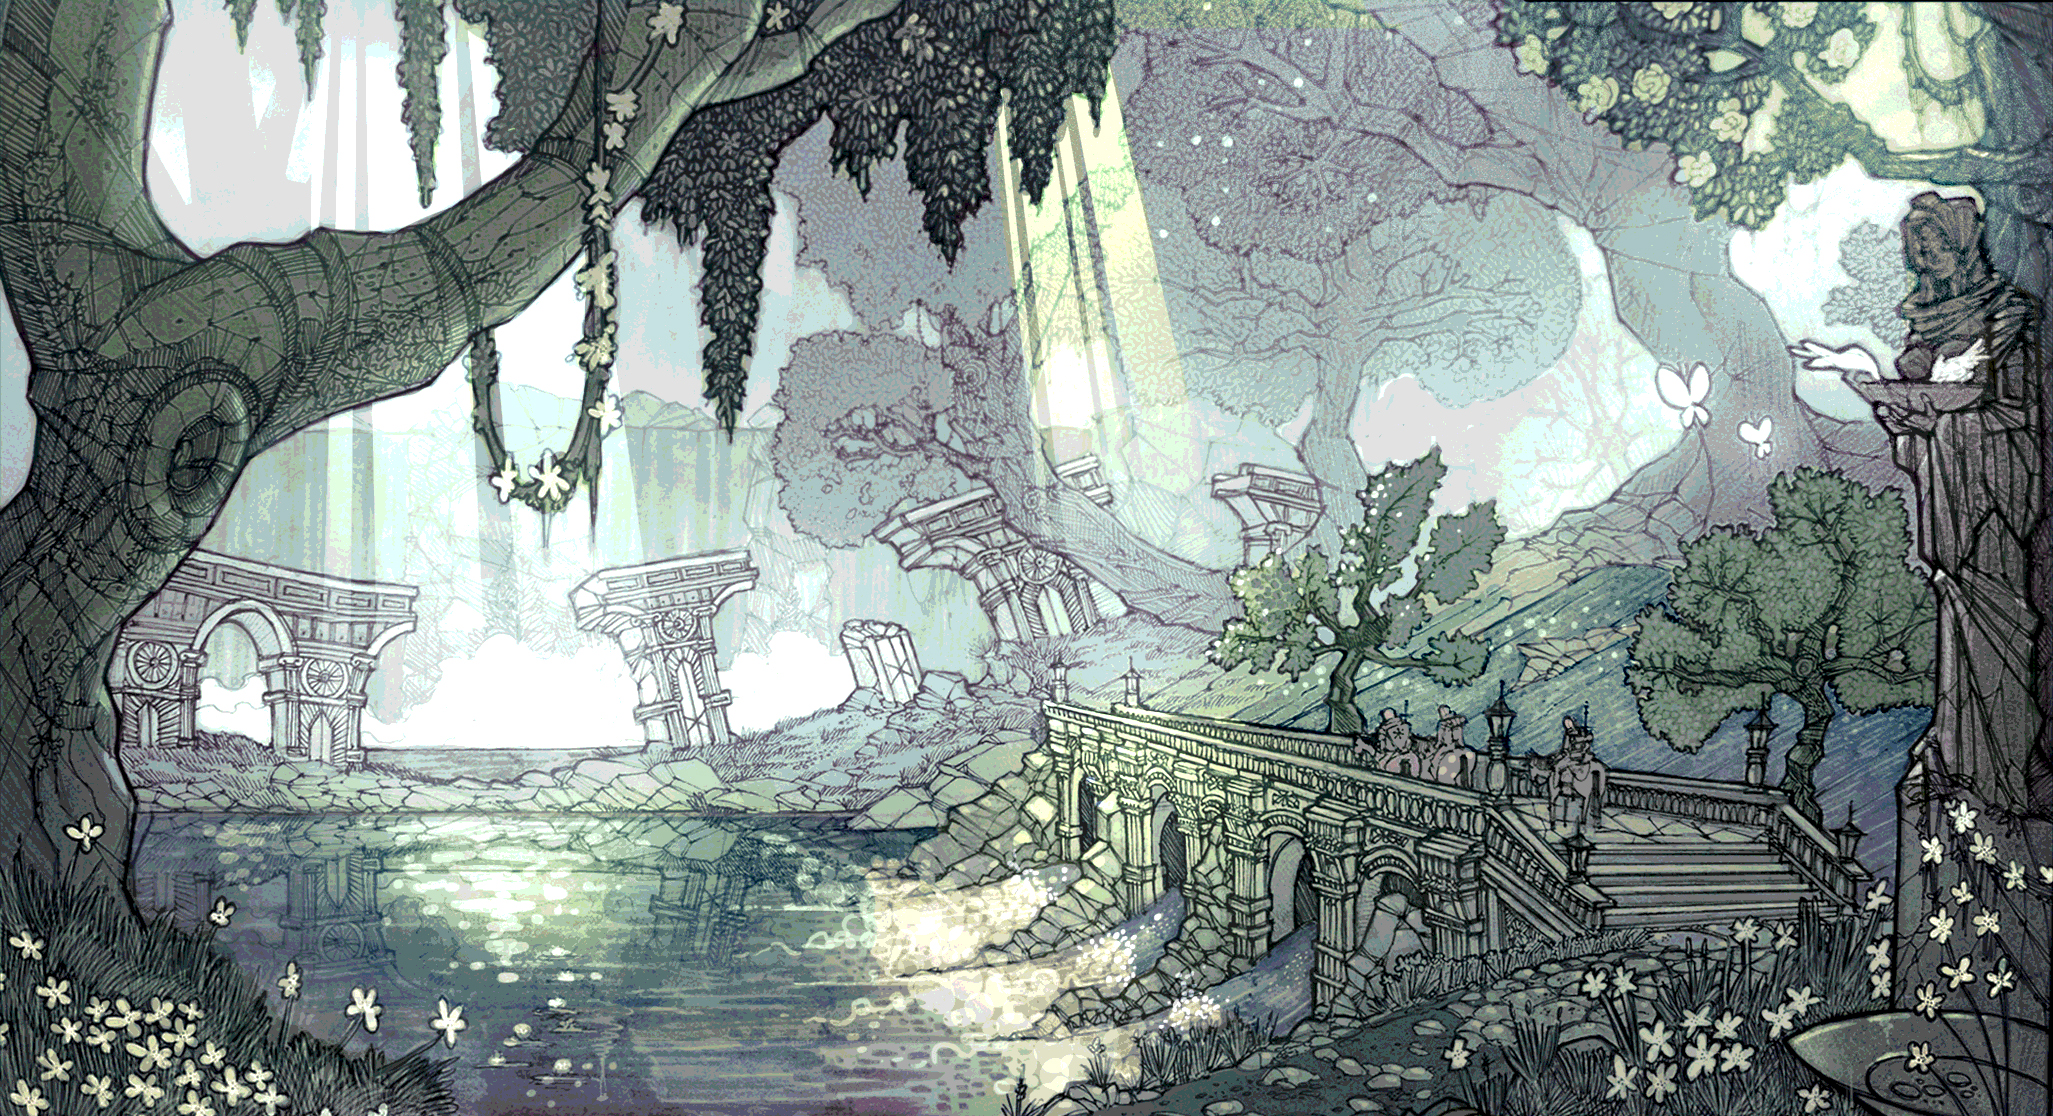 Illustration of a beautiful spring forest, part of a personal project.